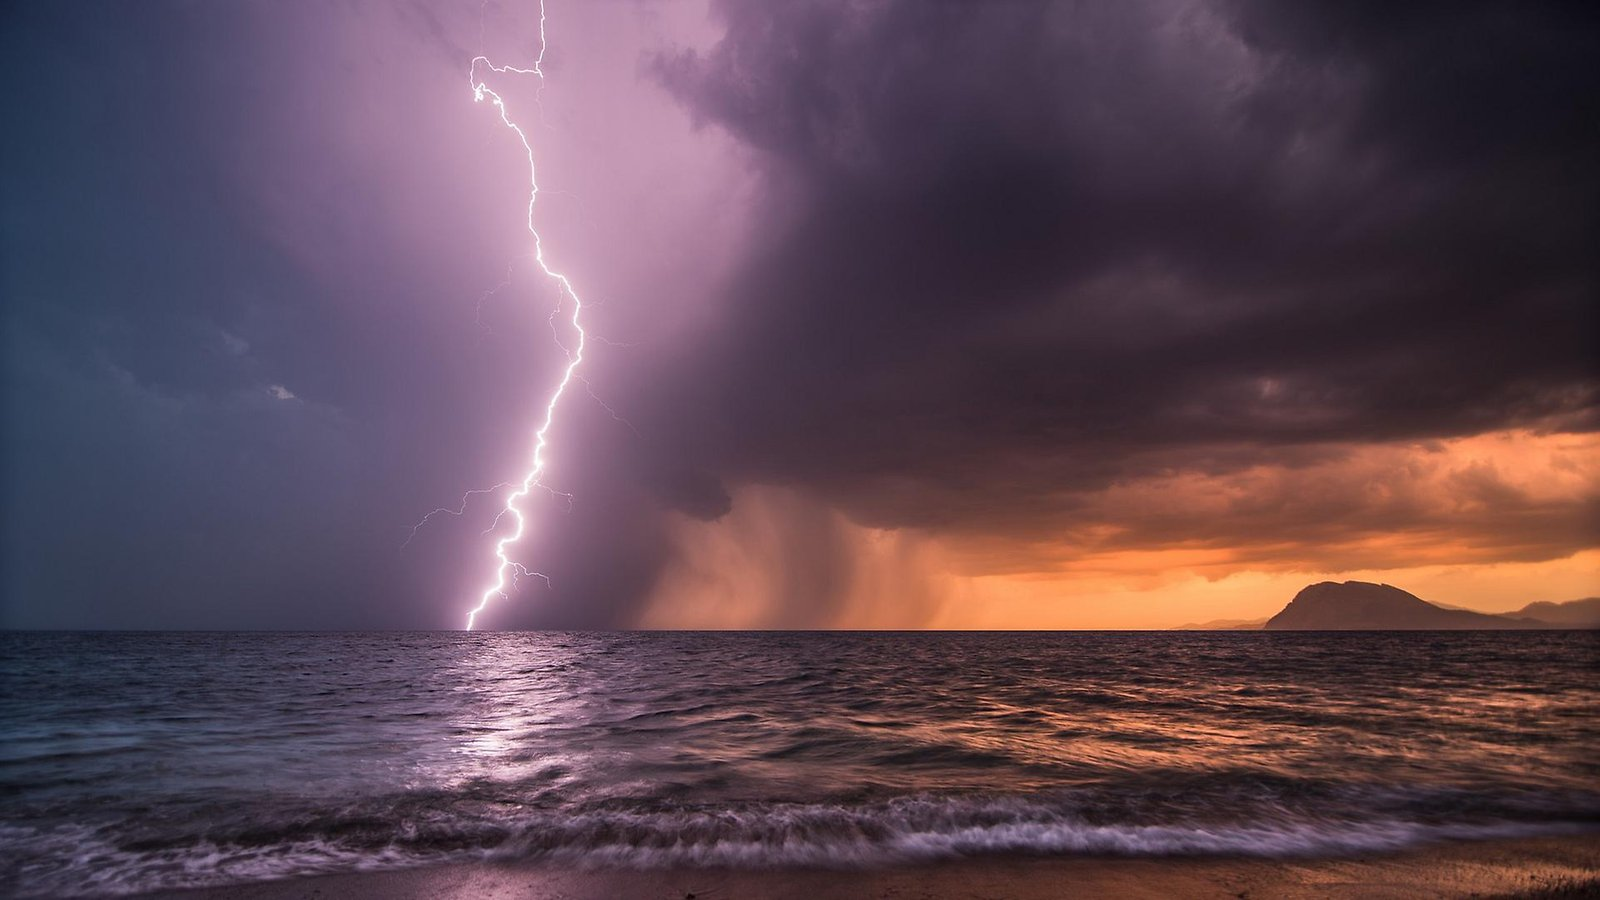 storm wallpaper hd c477f3 h900